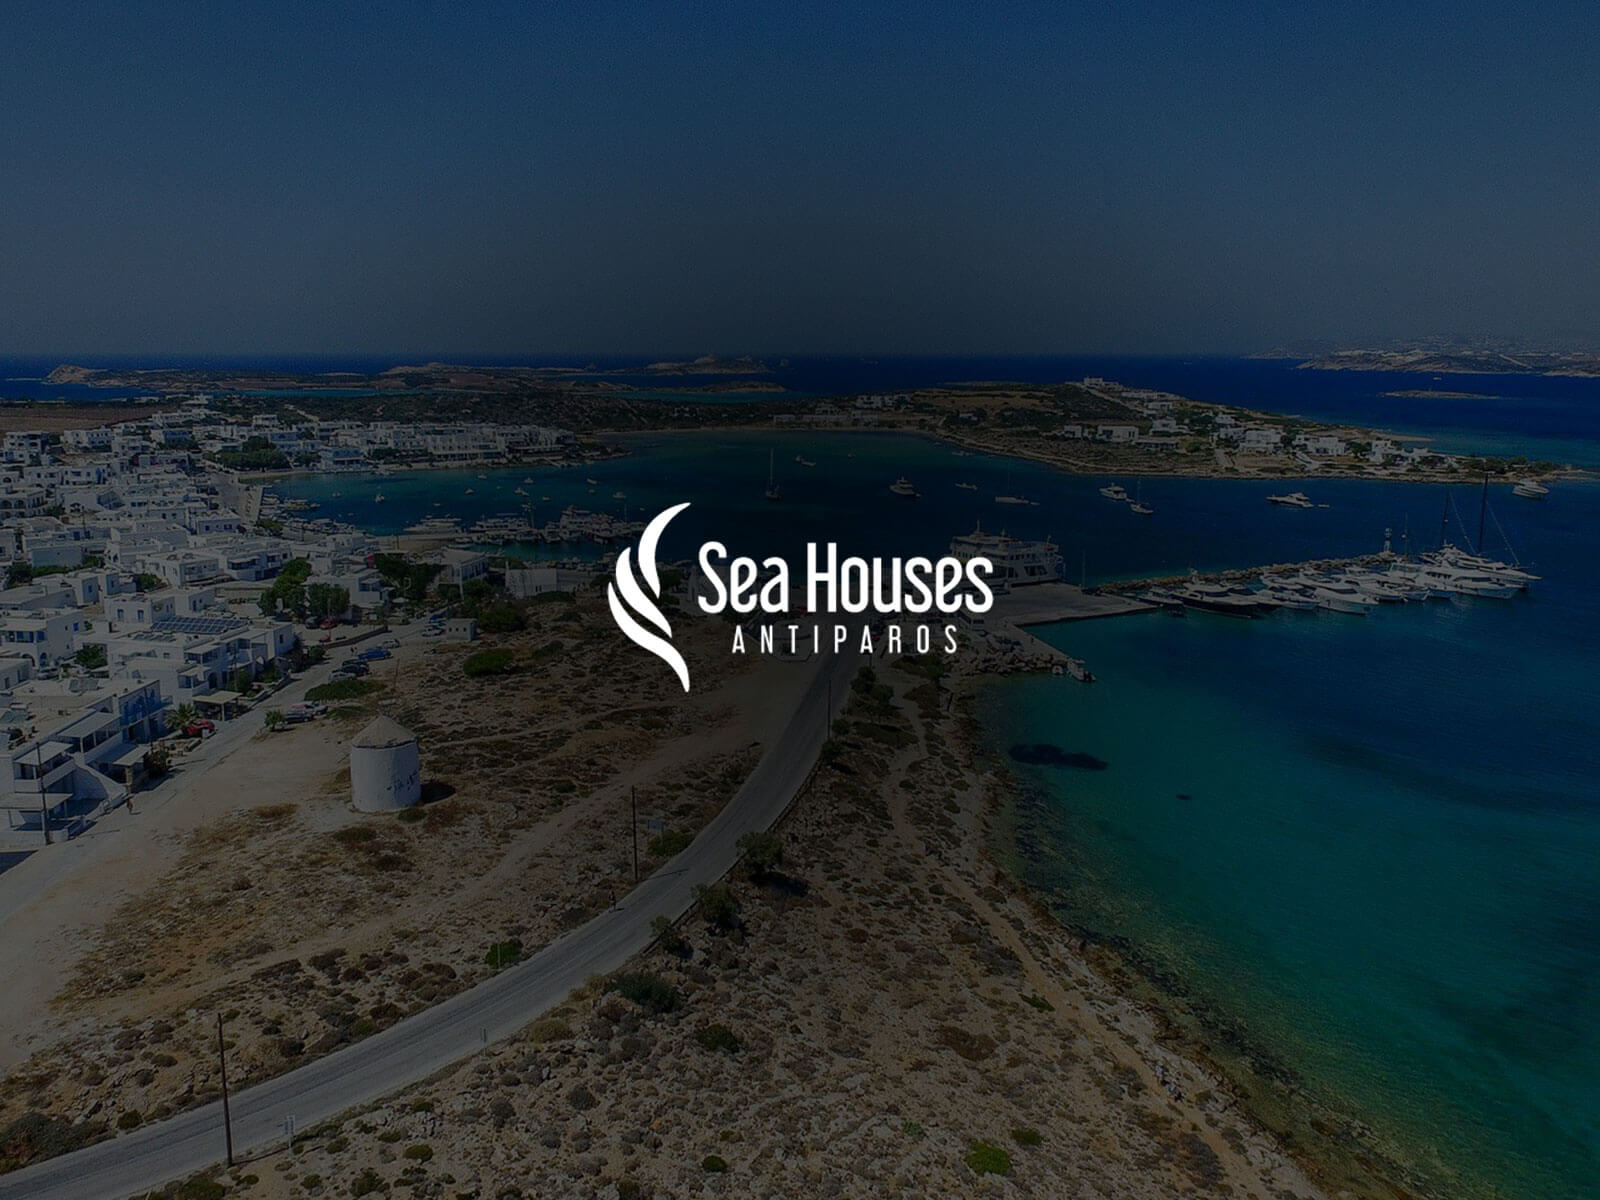 Sea Houses Antiparos